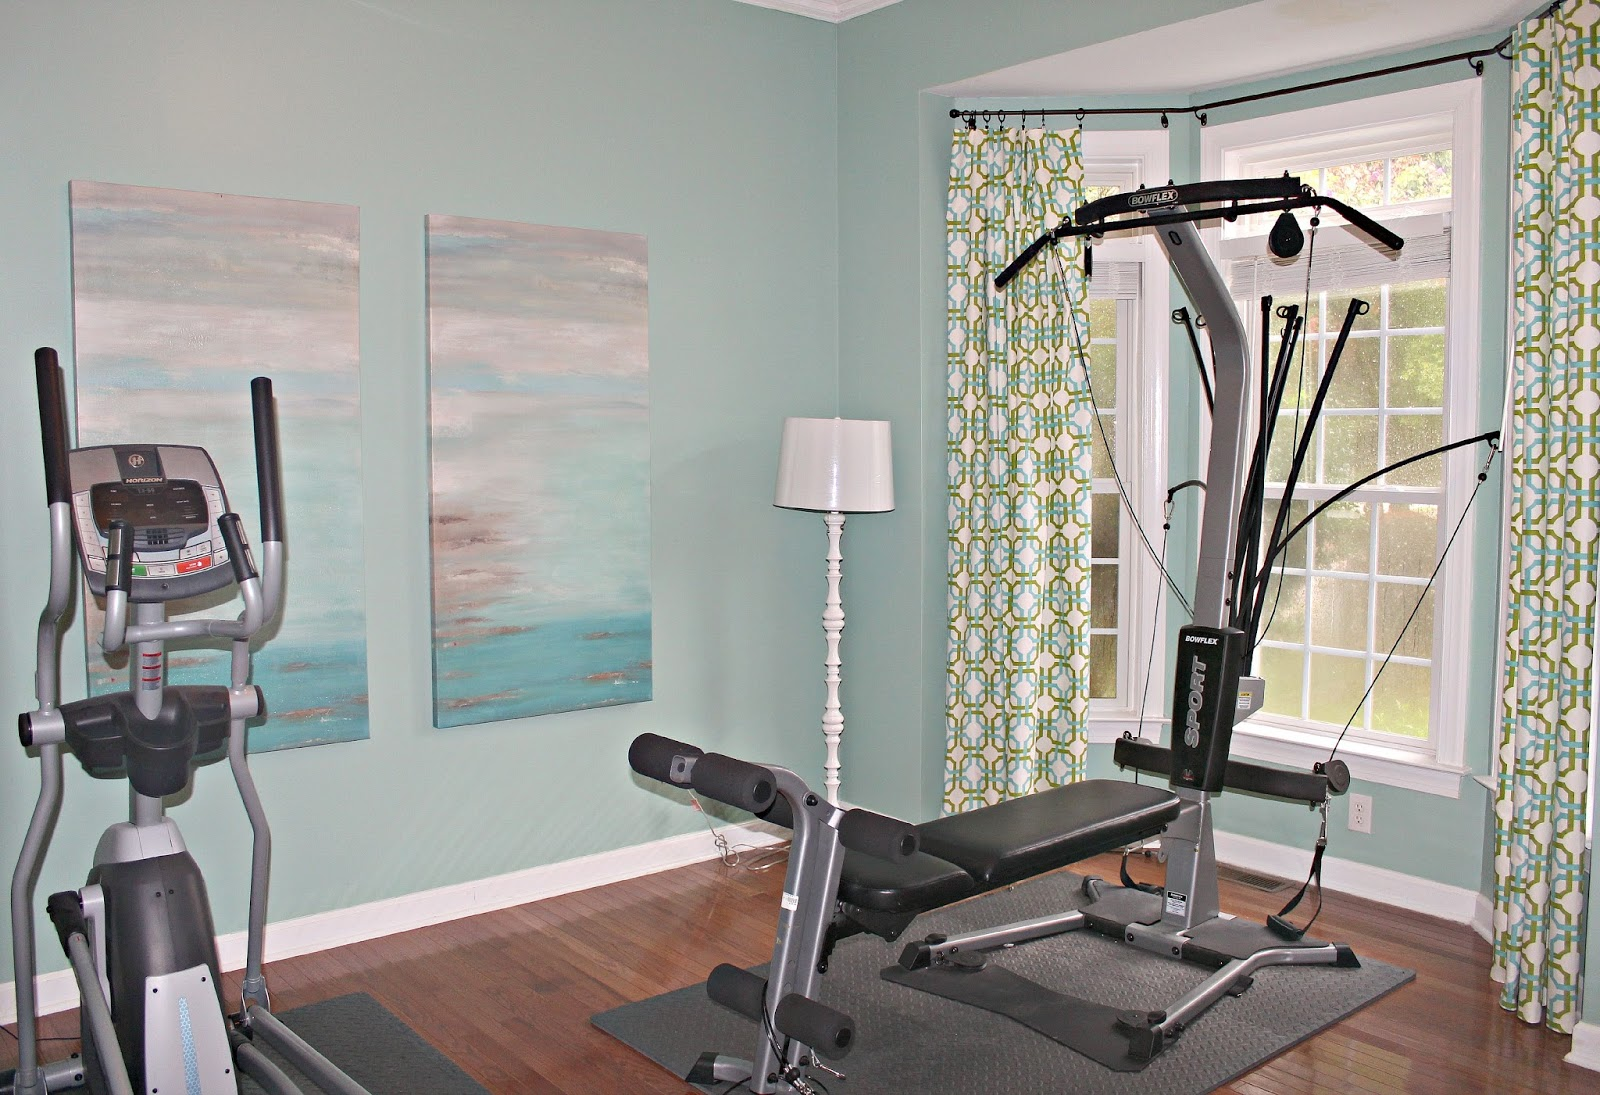 Wall Art For A Home Gym : Carolina on my mind home gym wall art